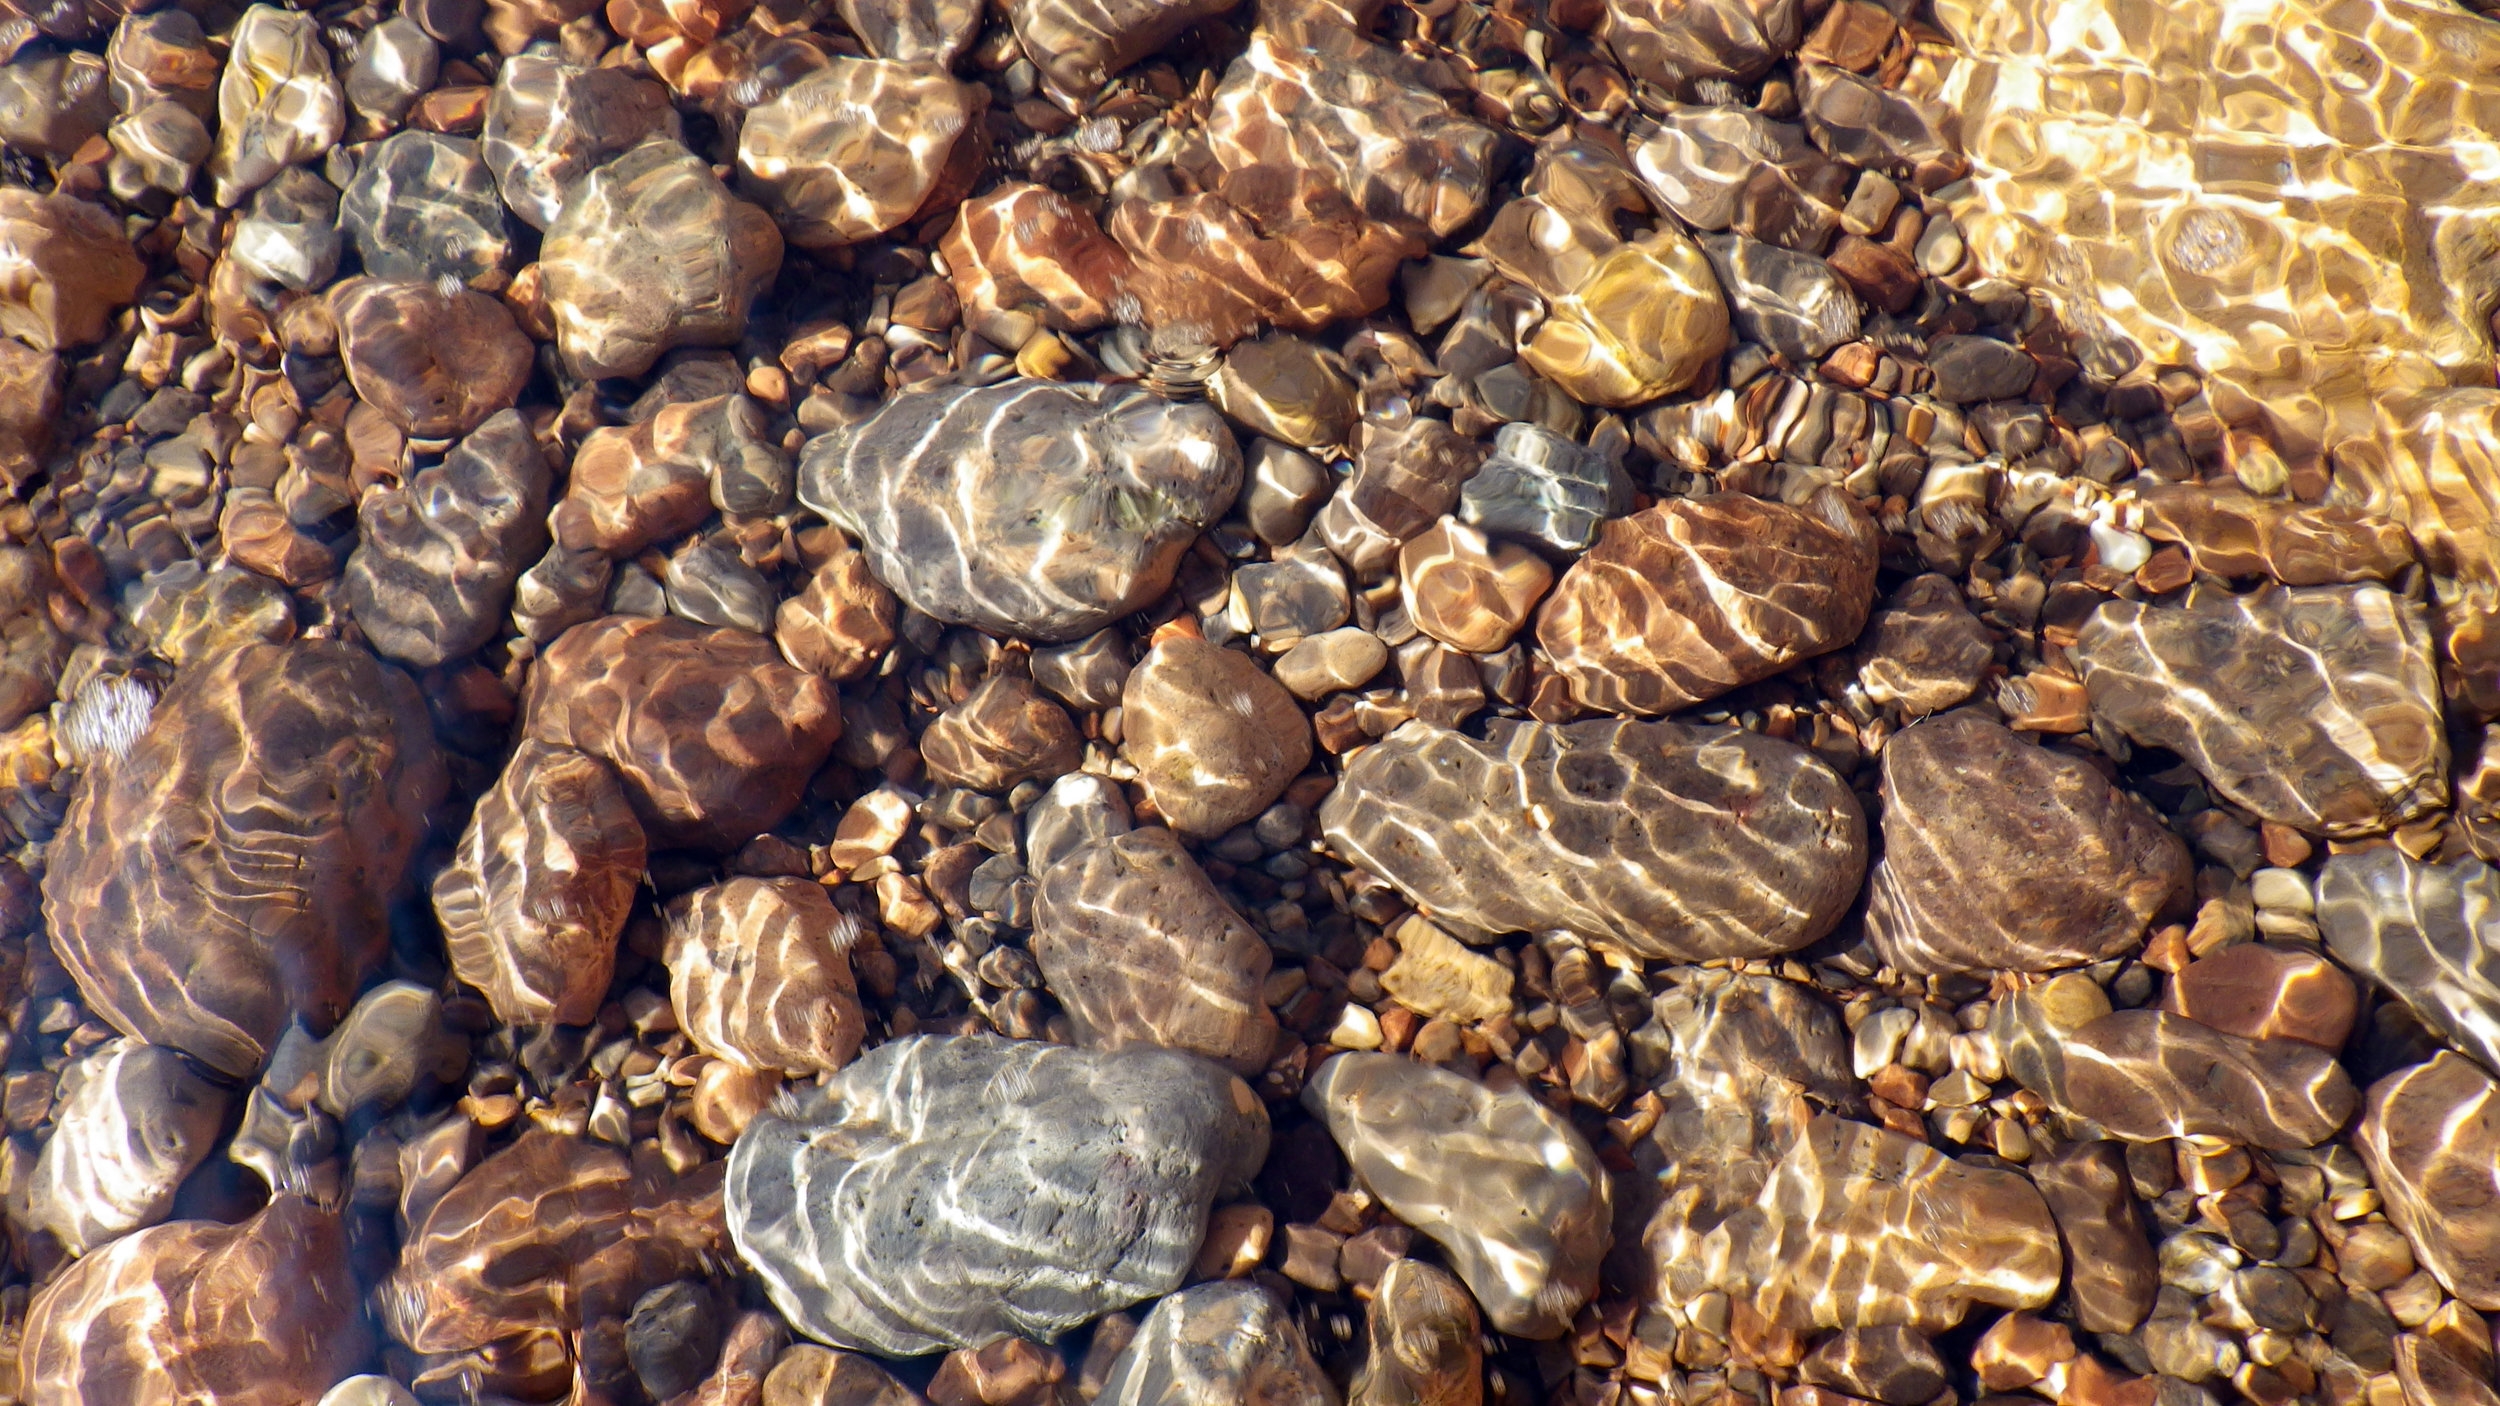 Colourful pebbles and caustics